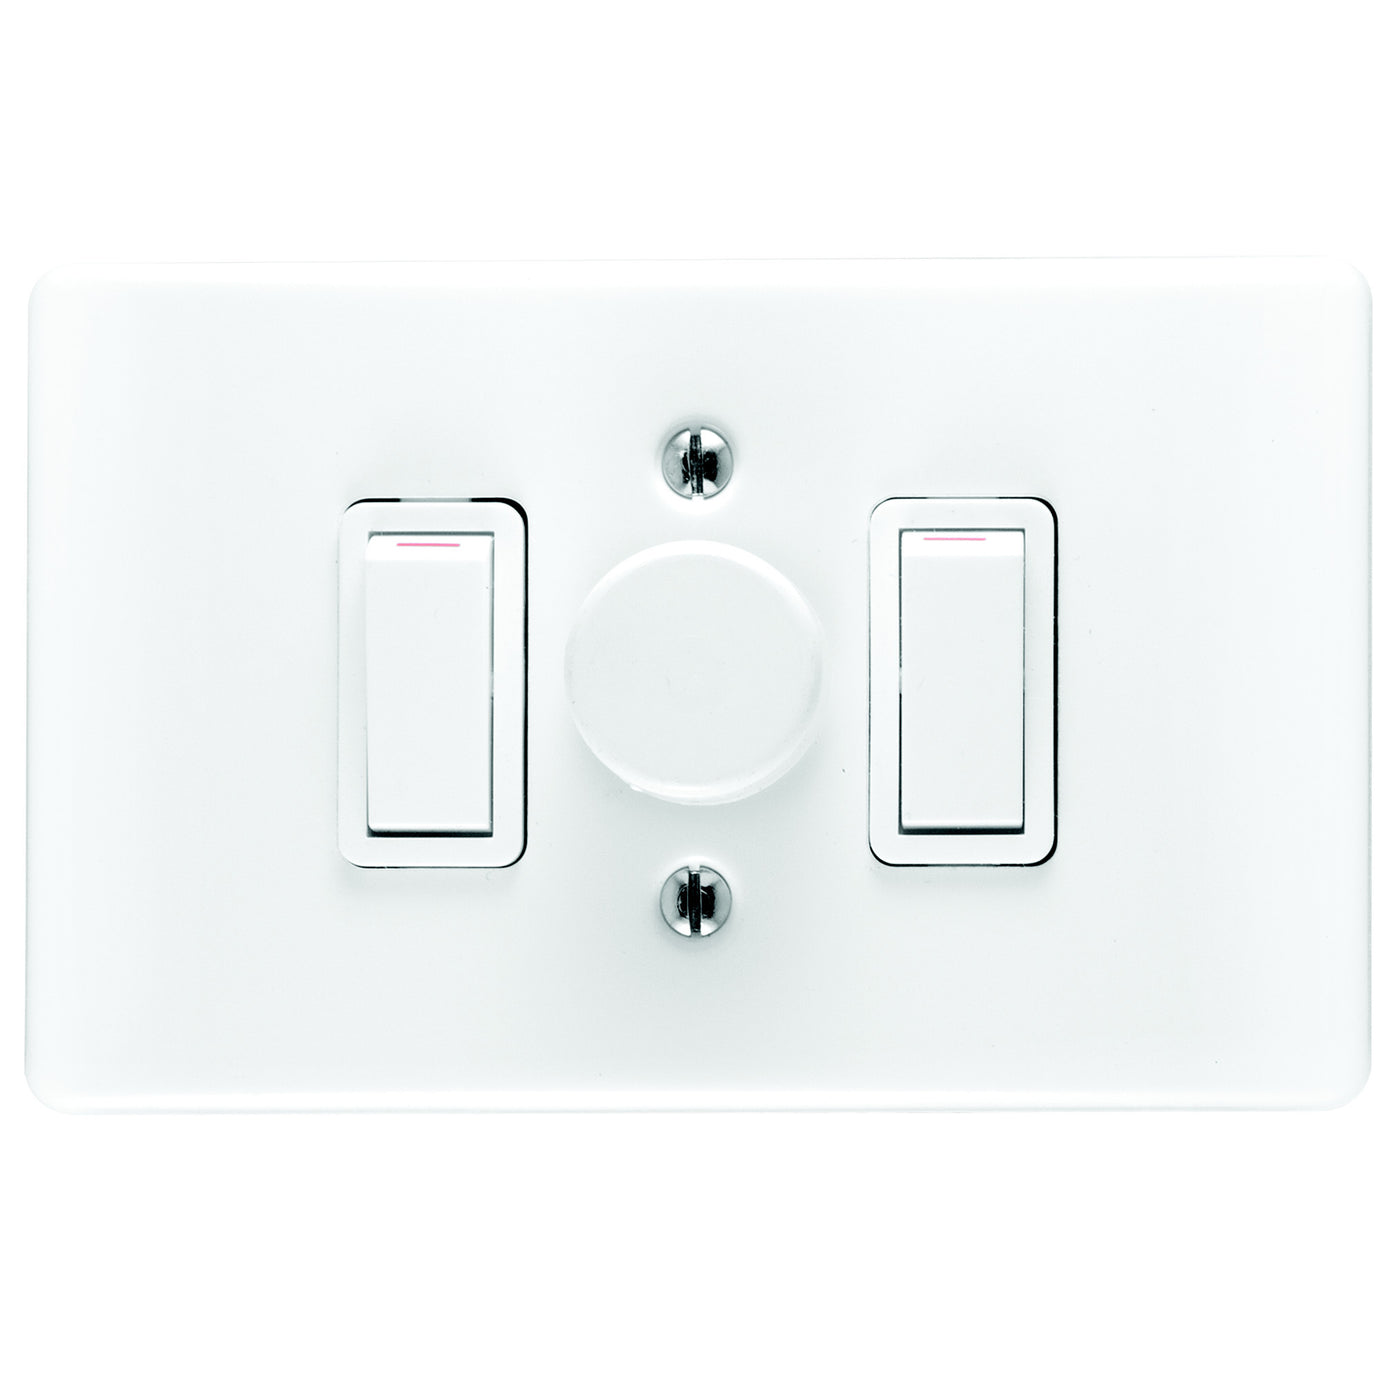 CRABTREE CLASSIC DIMMER SWITCH 2 LEVER COVER 4X2 600W